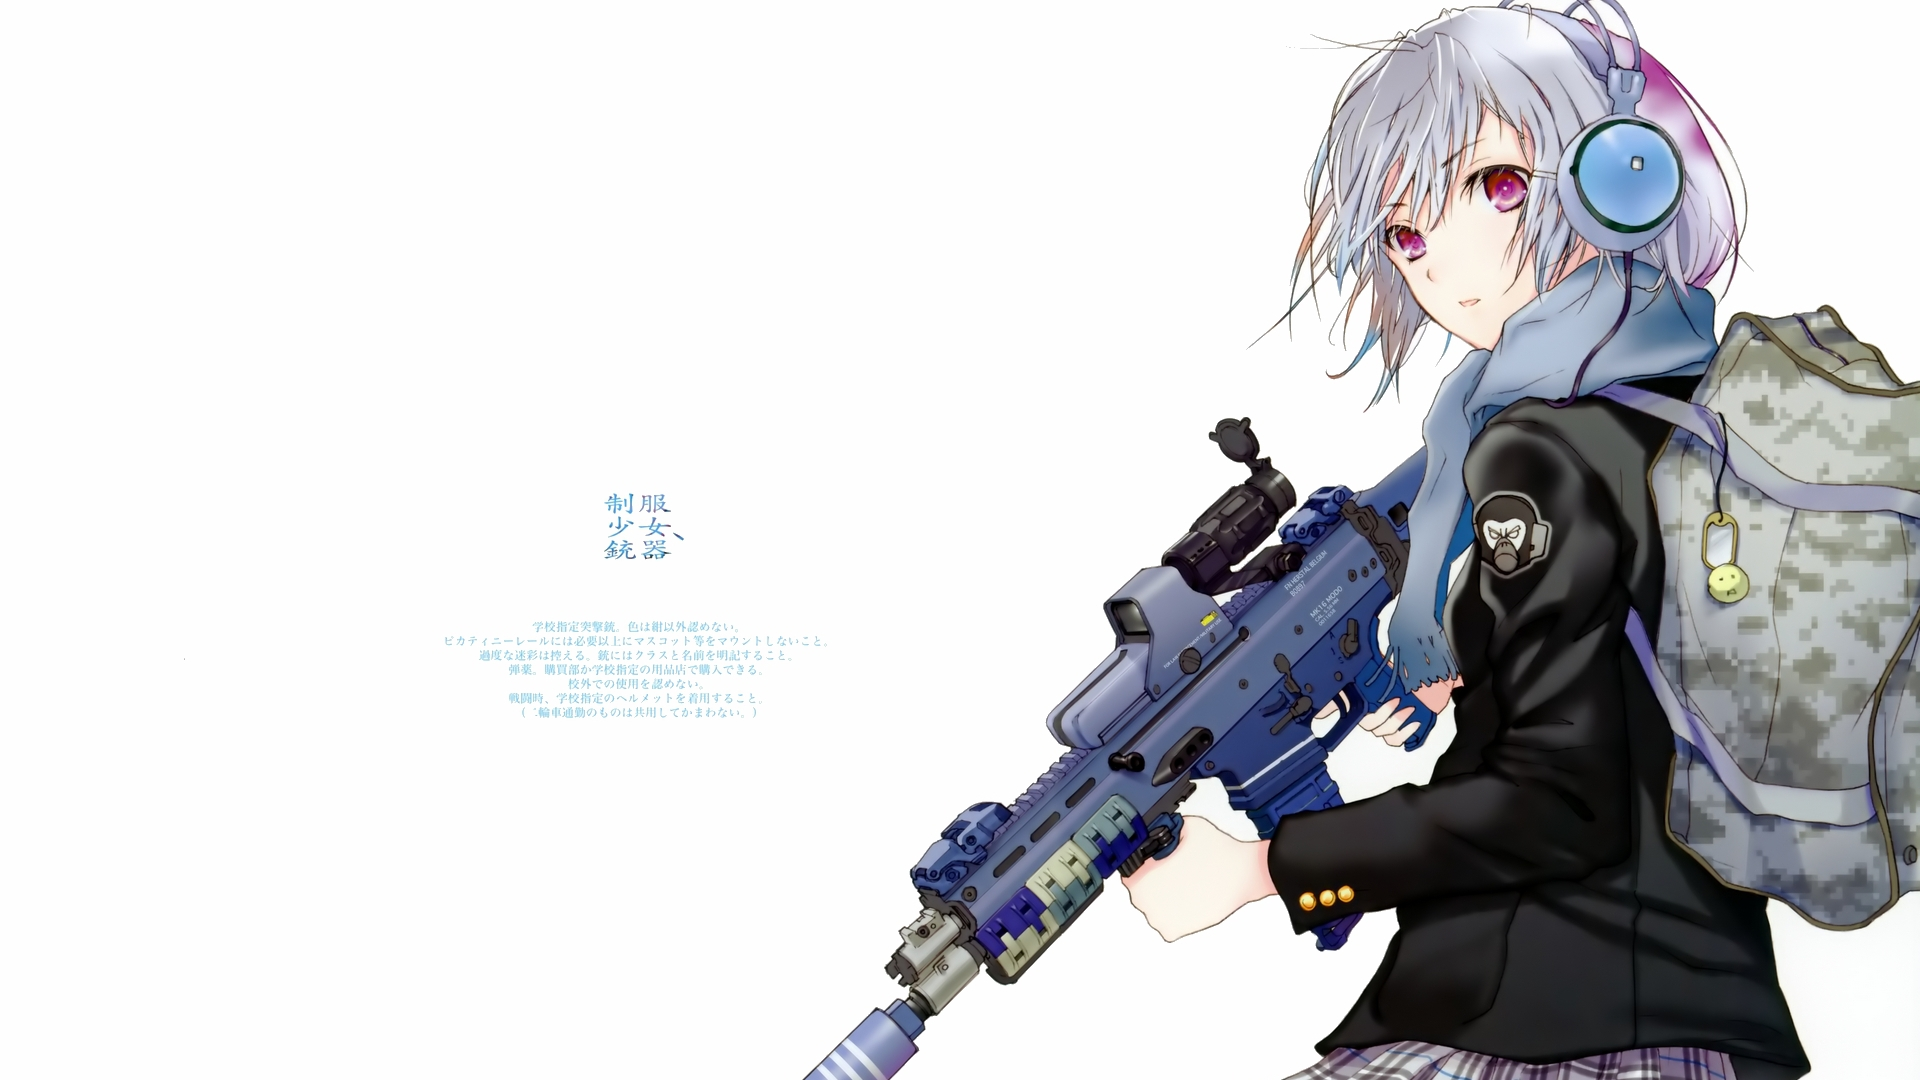 Anime Girls With Guns HD Wallpaper | 1920x1080 | ID:22691